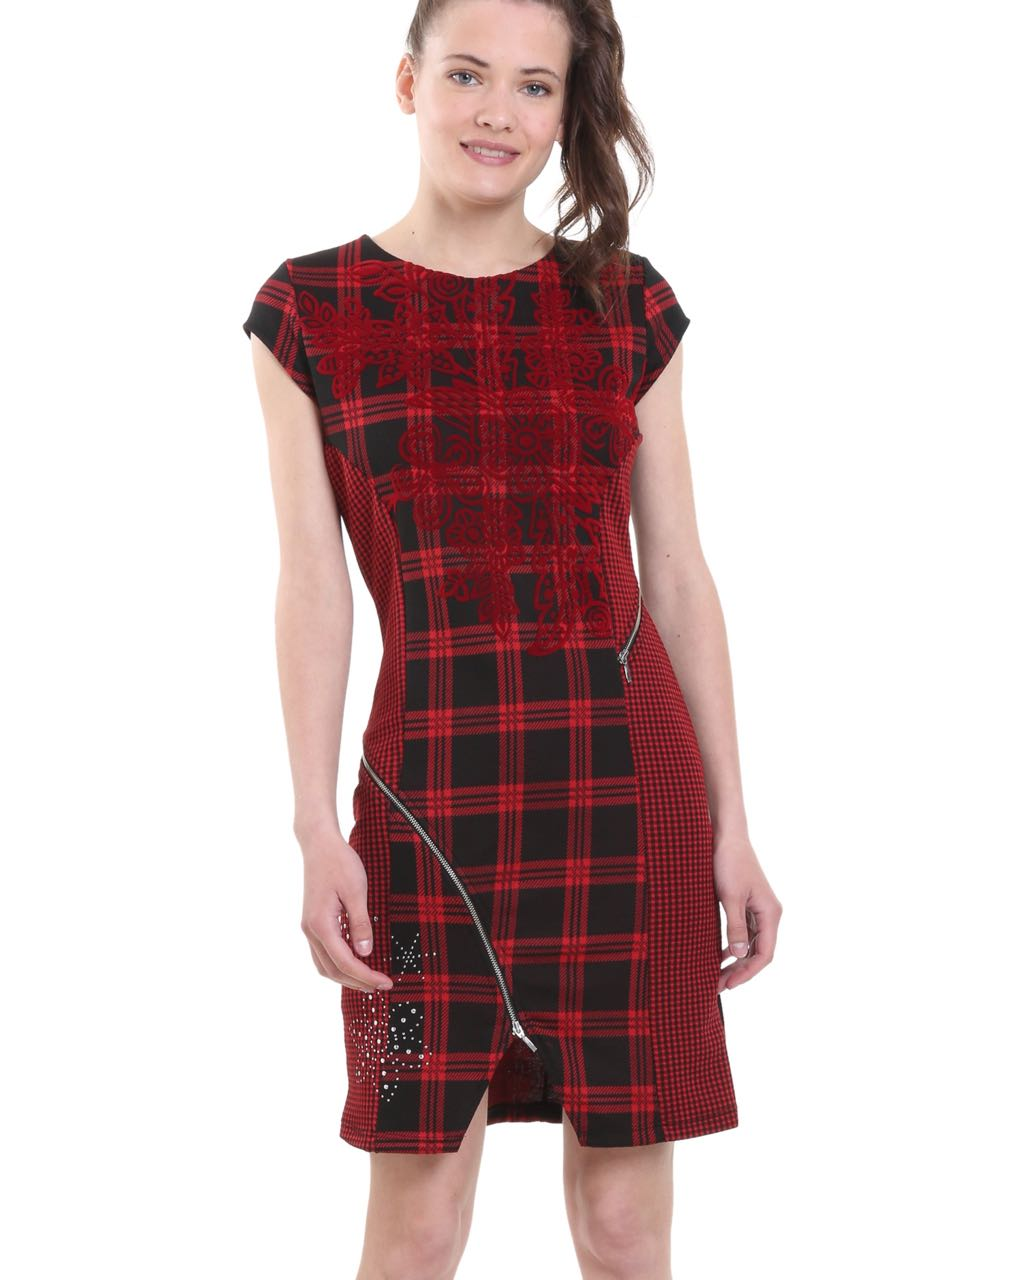 Red Plaid Carolers 18: DESIGUAL Dress ROMA Zippers Plaid Embroidery 18WWVK75 Red